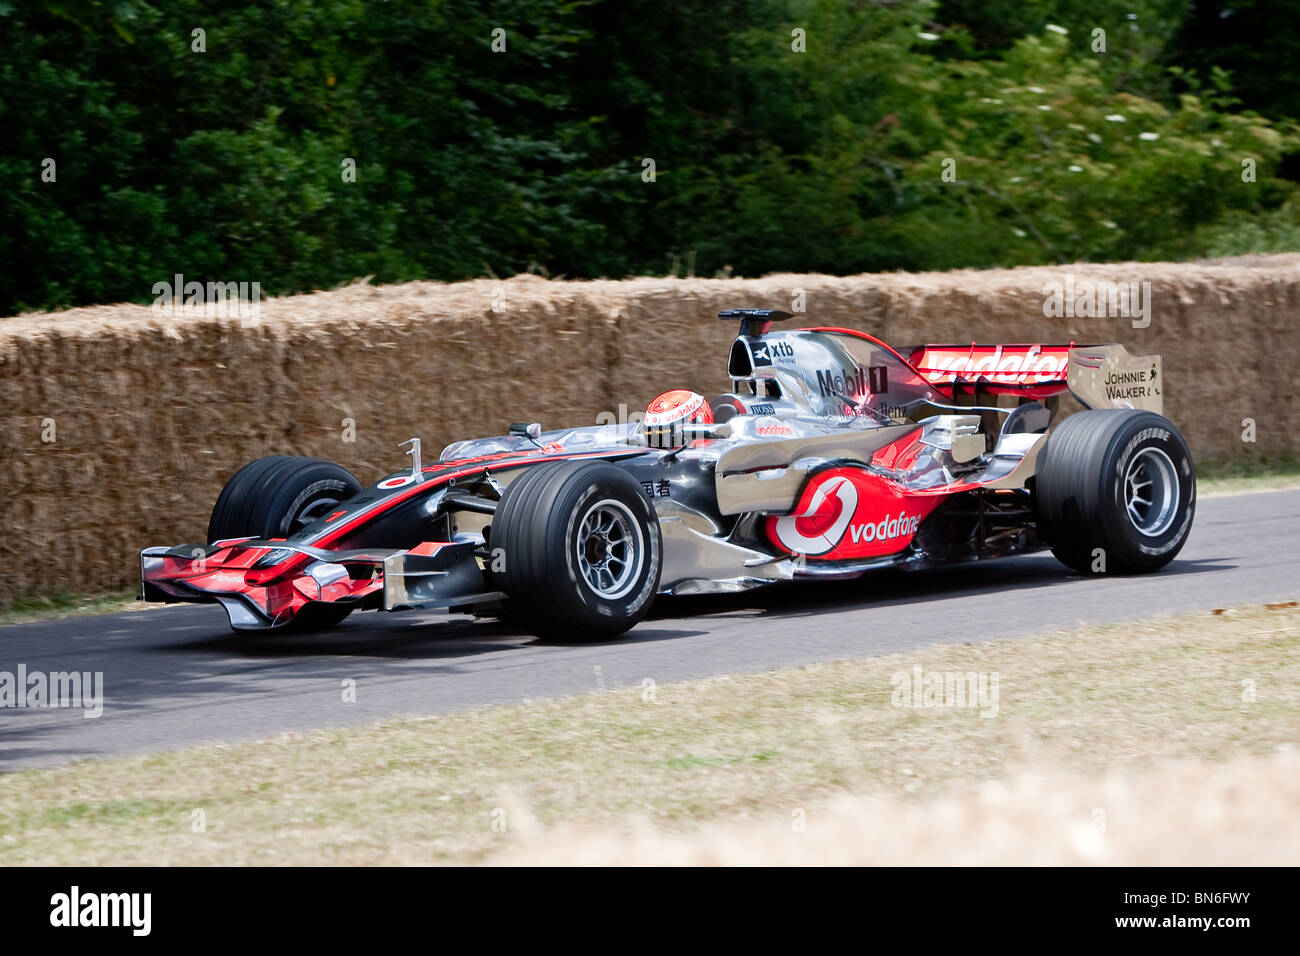 McLaren Mercedes MP4/23 at the Festival of Speed Goodwood 2010 - Stock Image